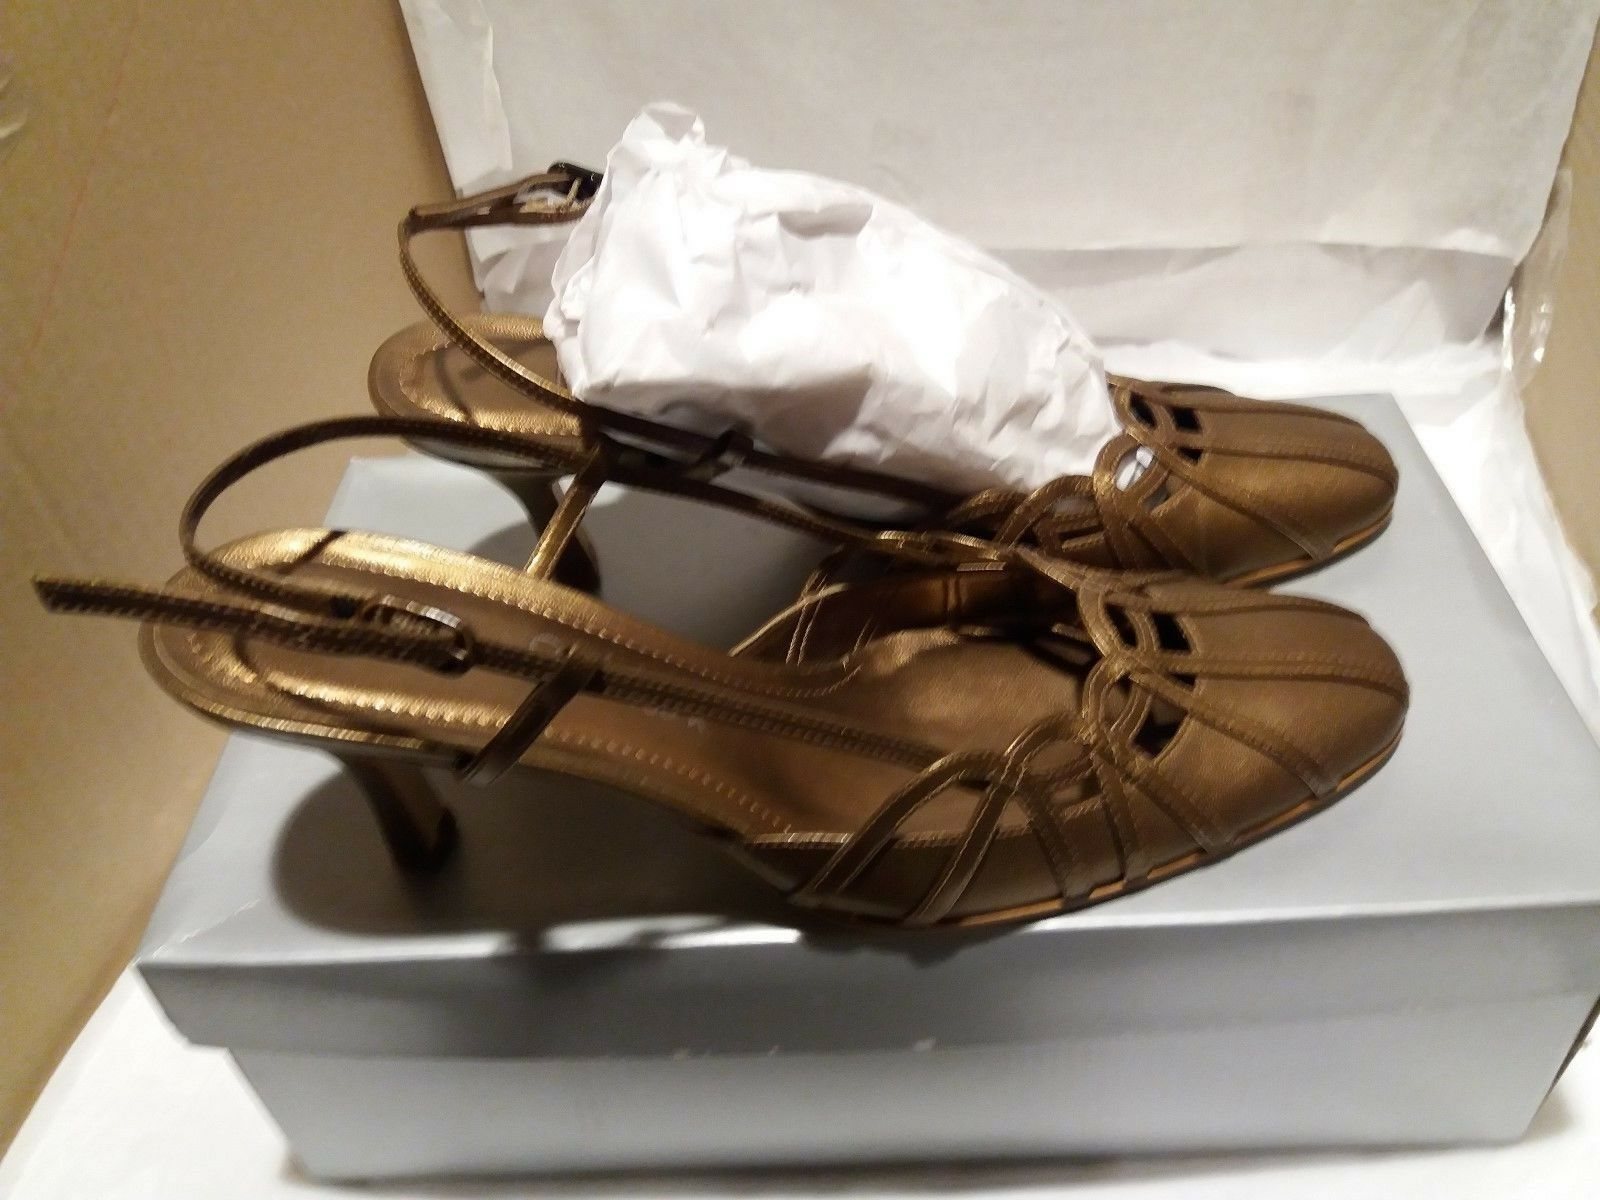 Stunning Jane Shilton Hoopla Bronze Leather Shoes - Size 37 UK 4 - Shoes 53adec